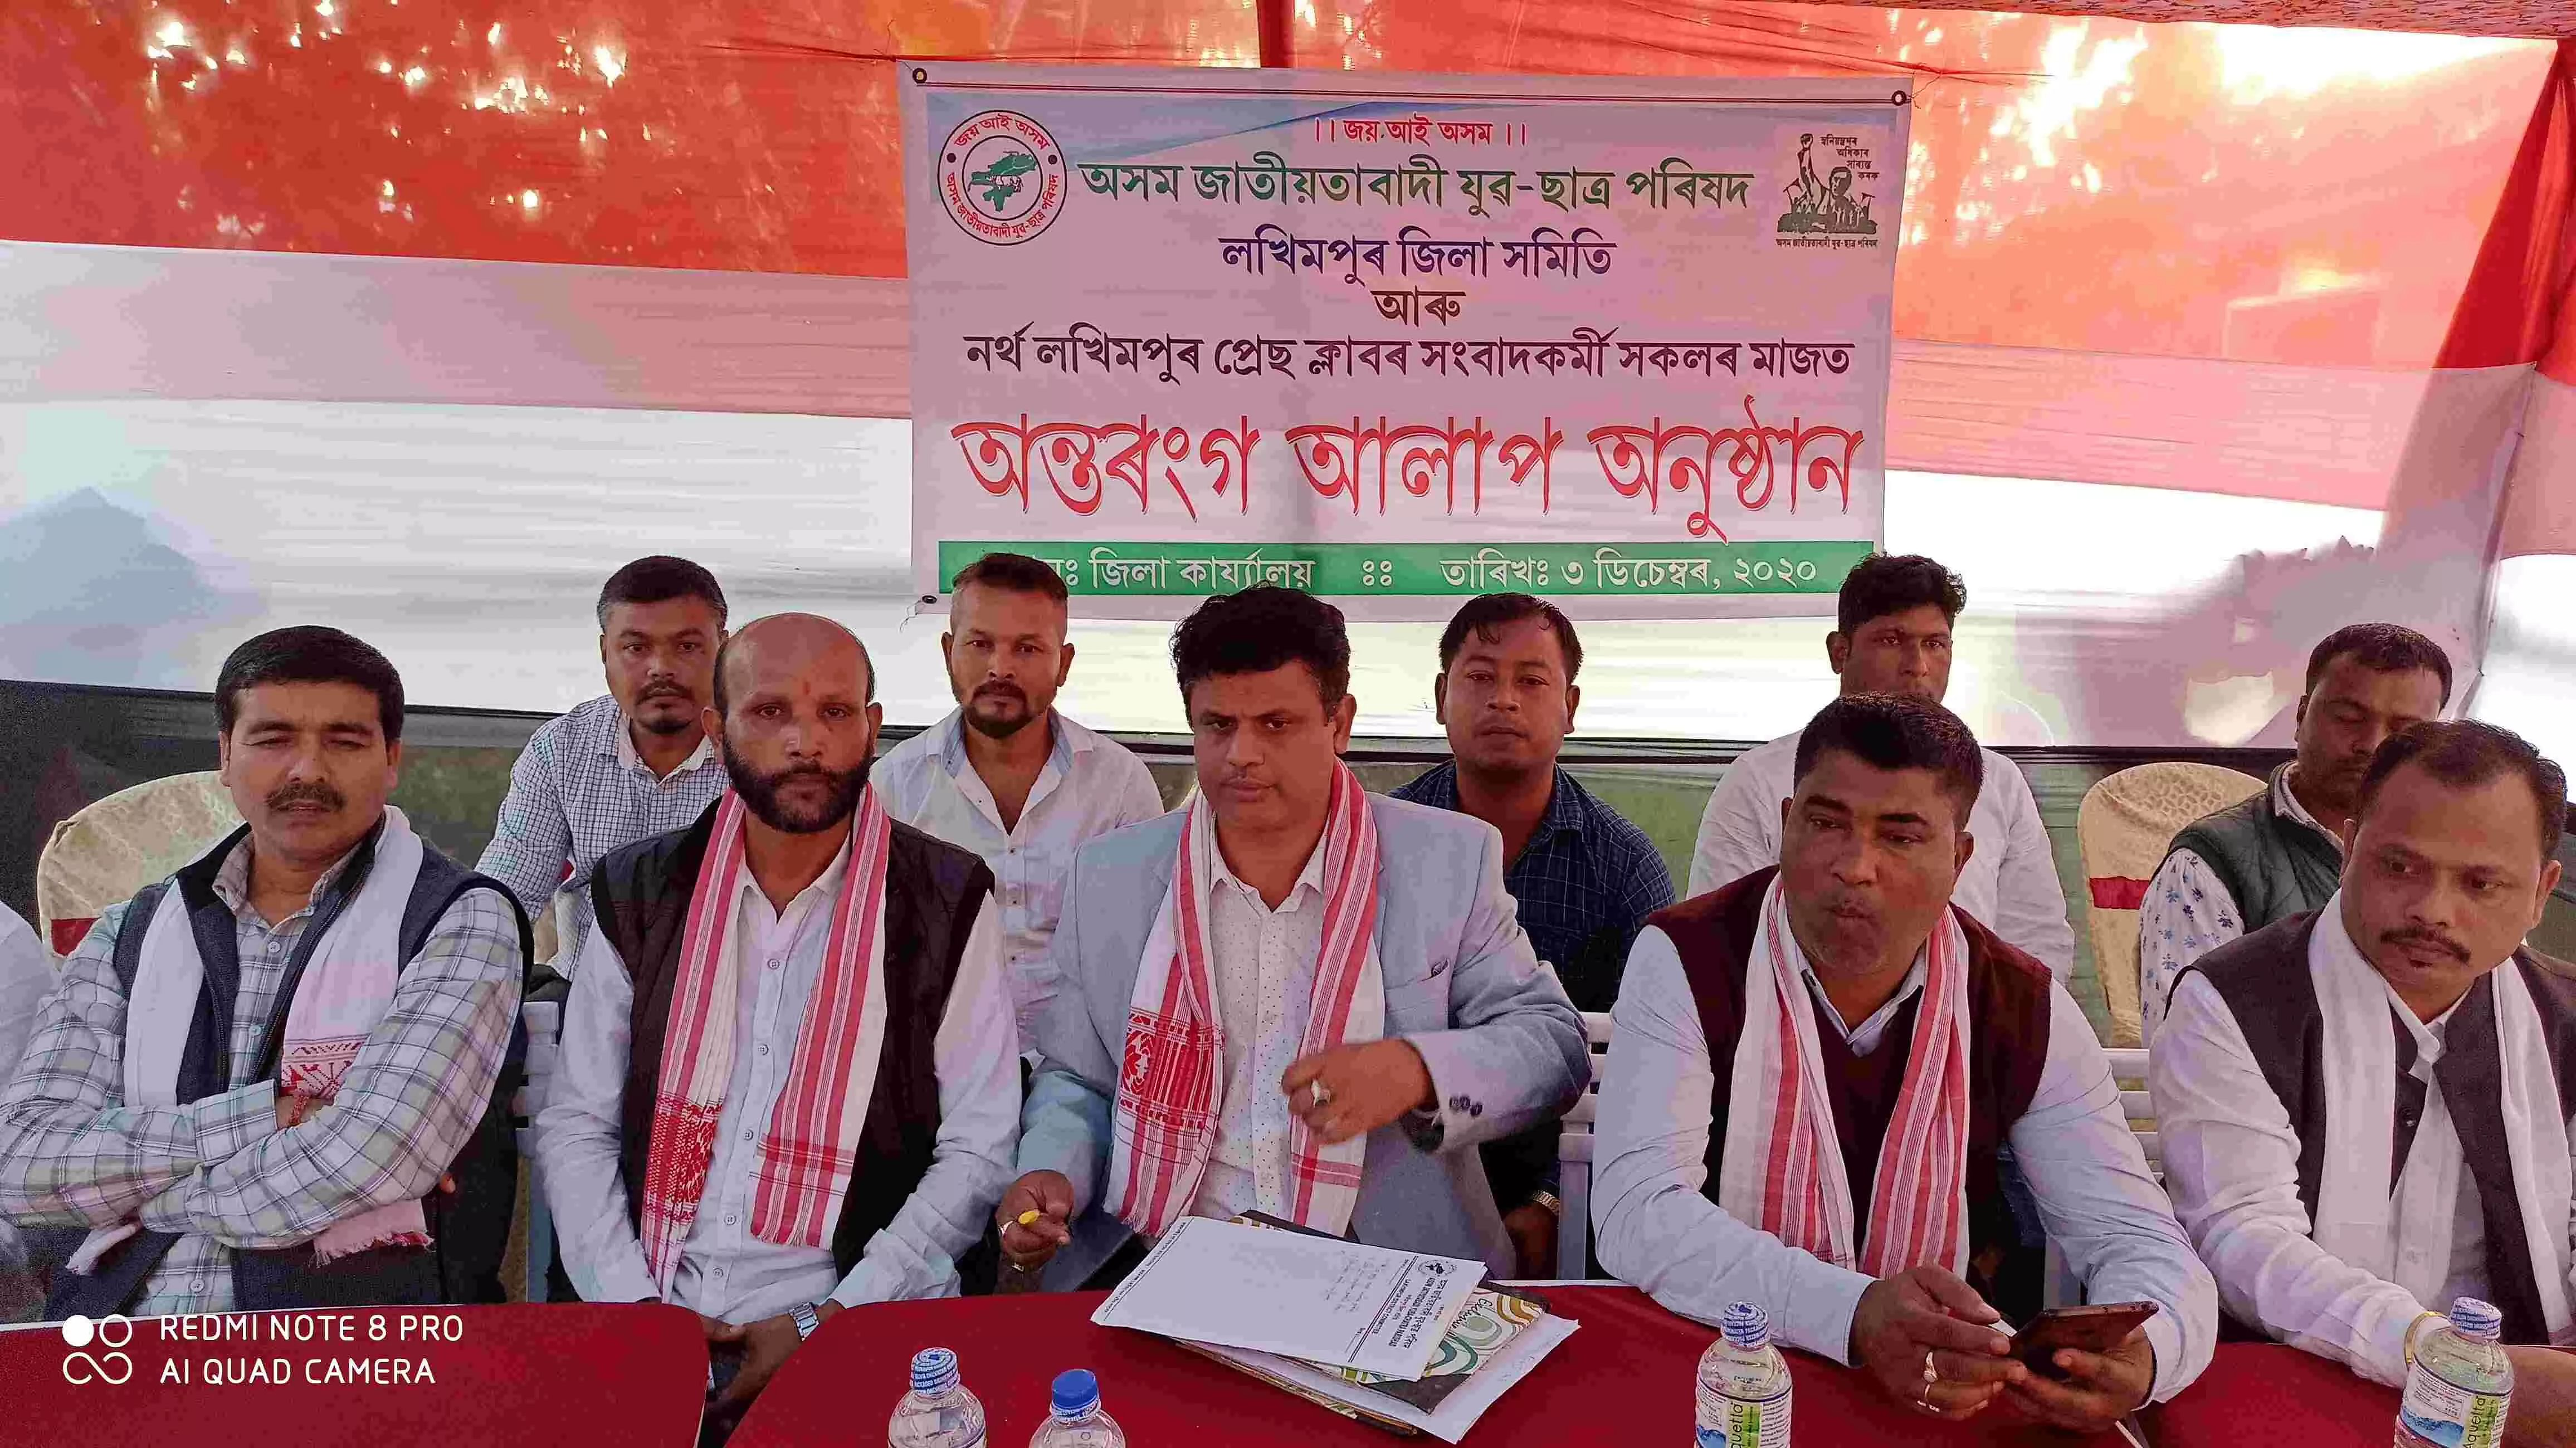 Lakhimpur AJYCP resolves to intensify stir against big river dam and CAA